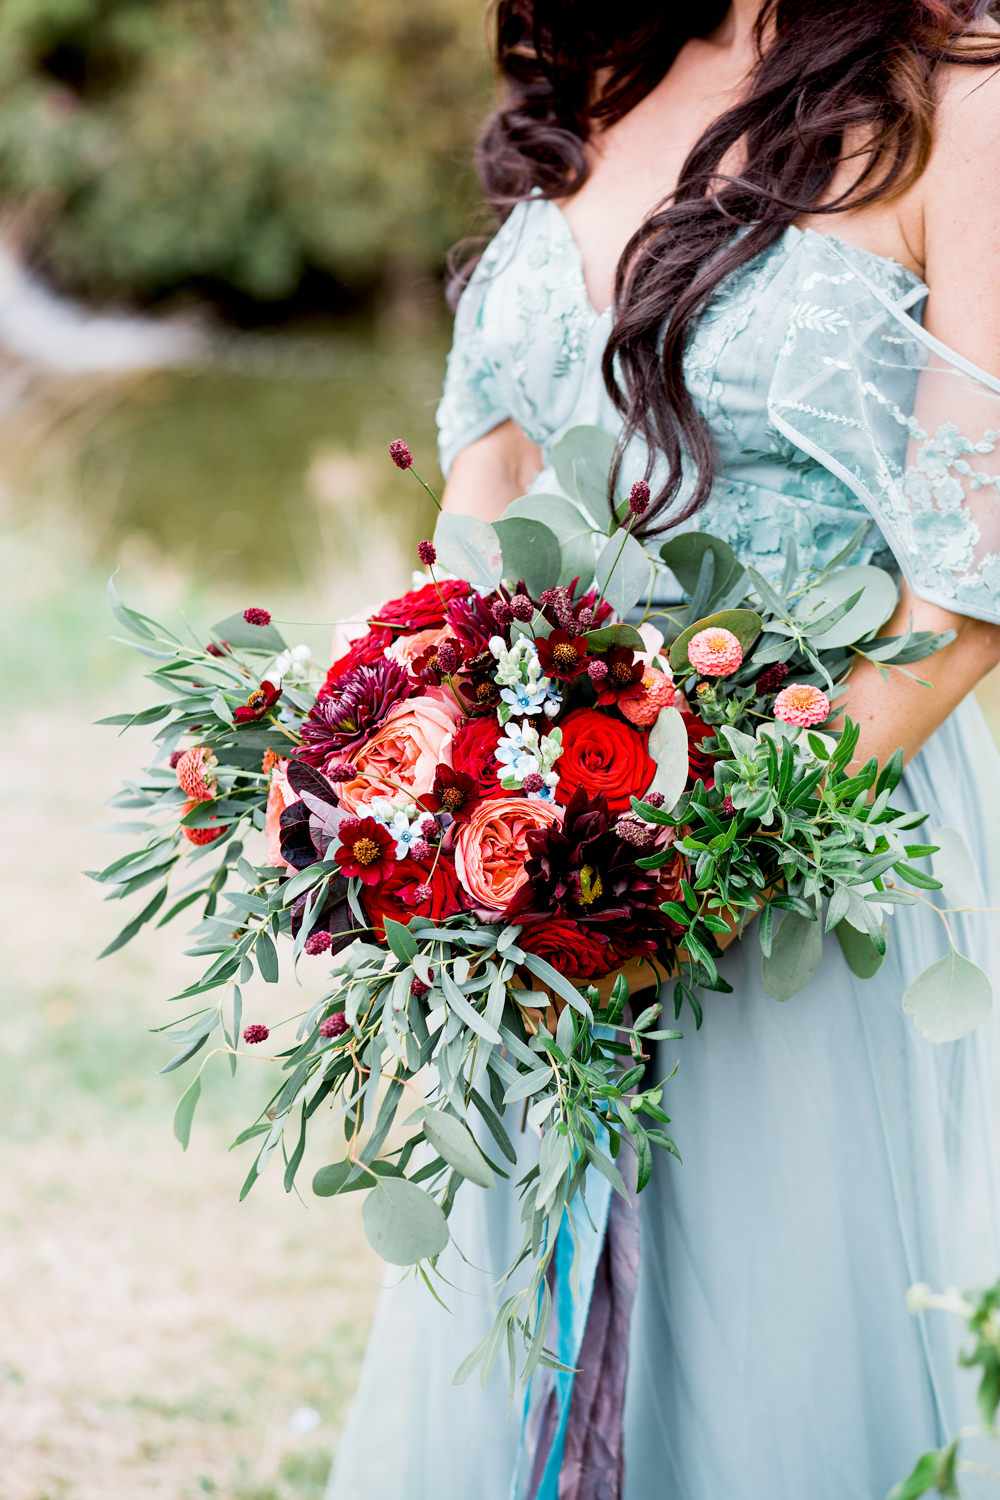 Bouquet Flowers Bride Bridal Greenery Foliage Rose Red Orange Cosmos Dahlias Oxypetalum Ribbons Ethereal Romantic Wedding Ideas Katherine Newman Photography